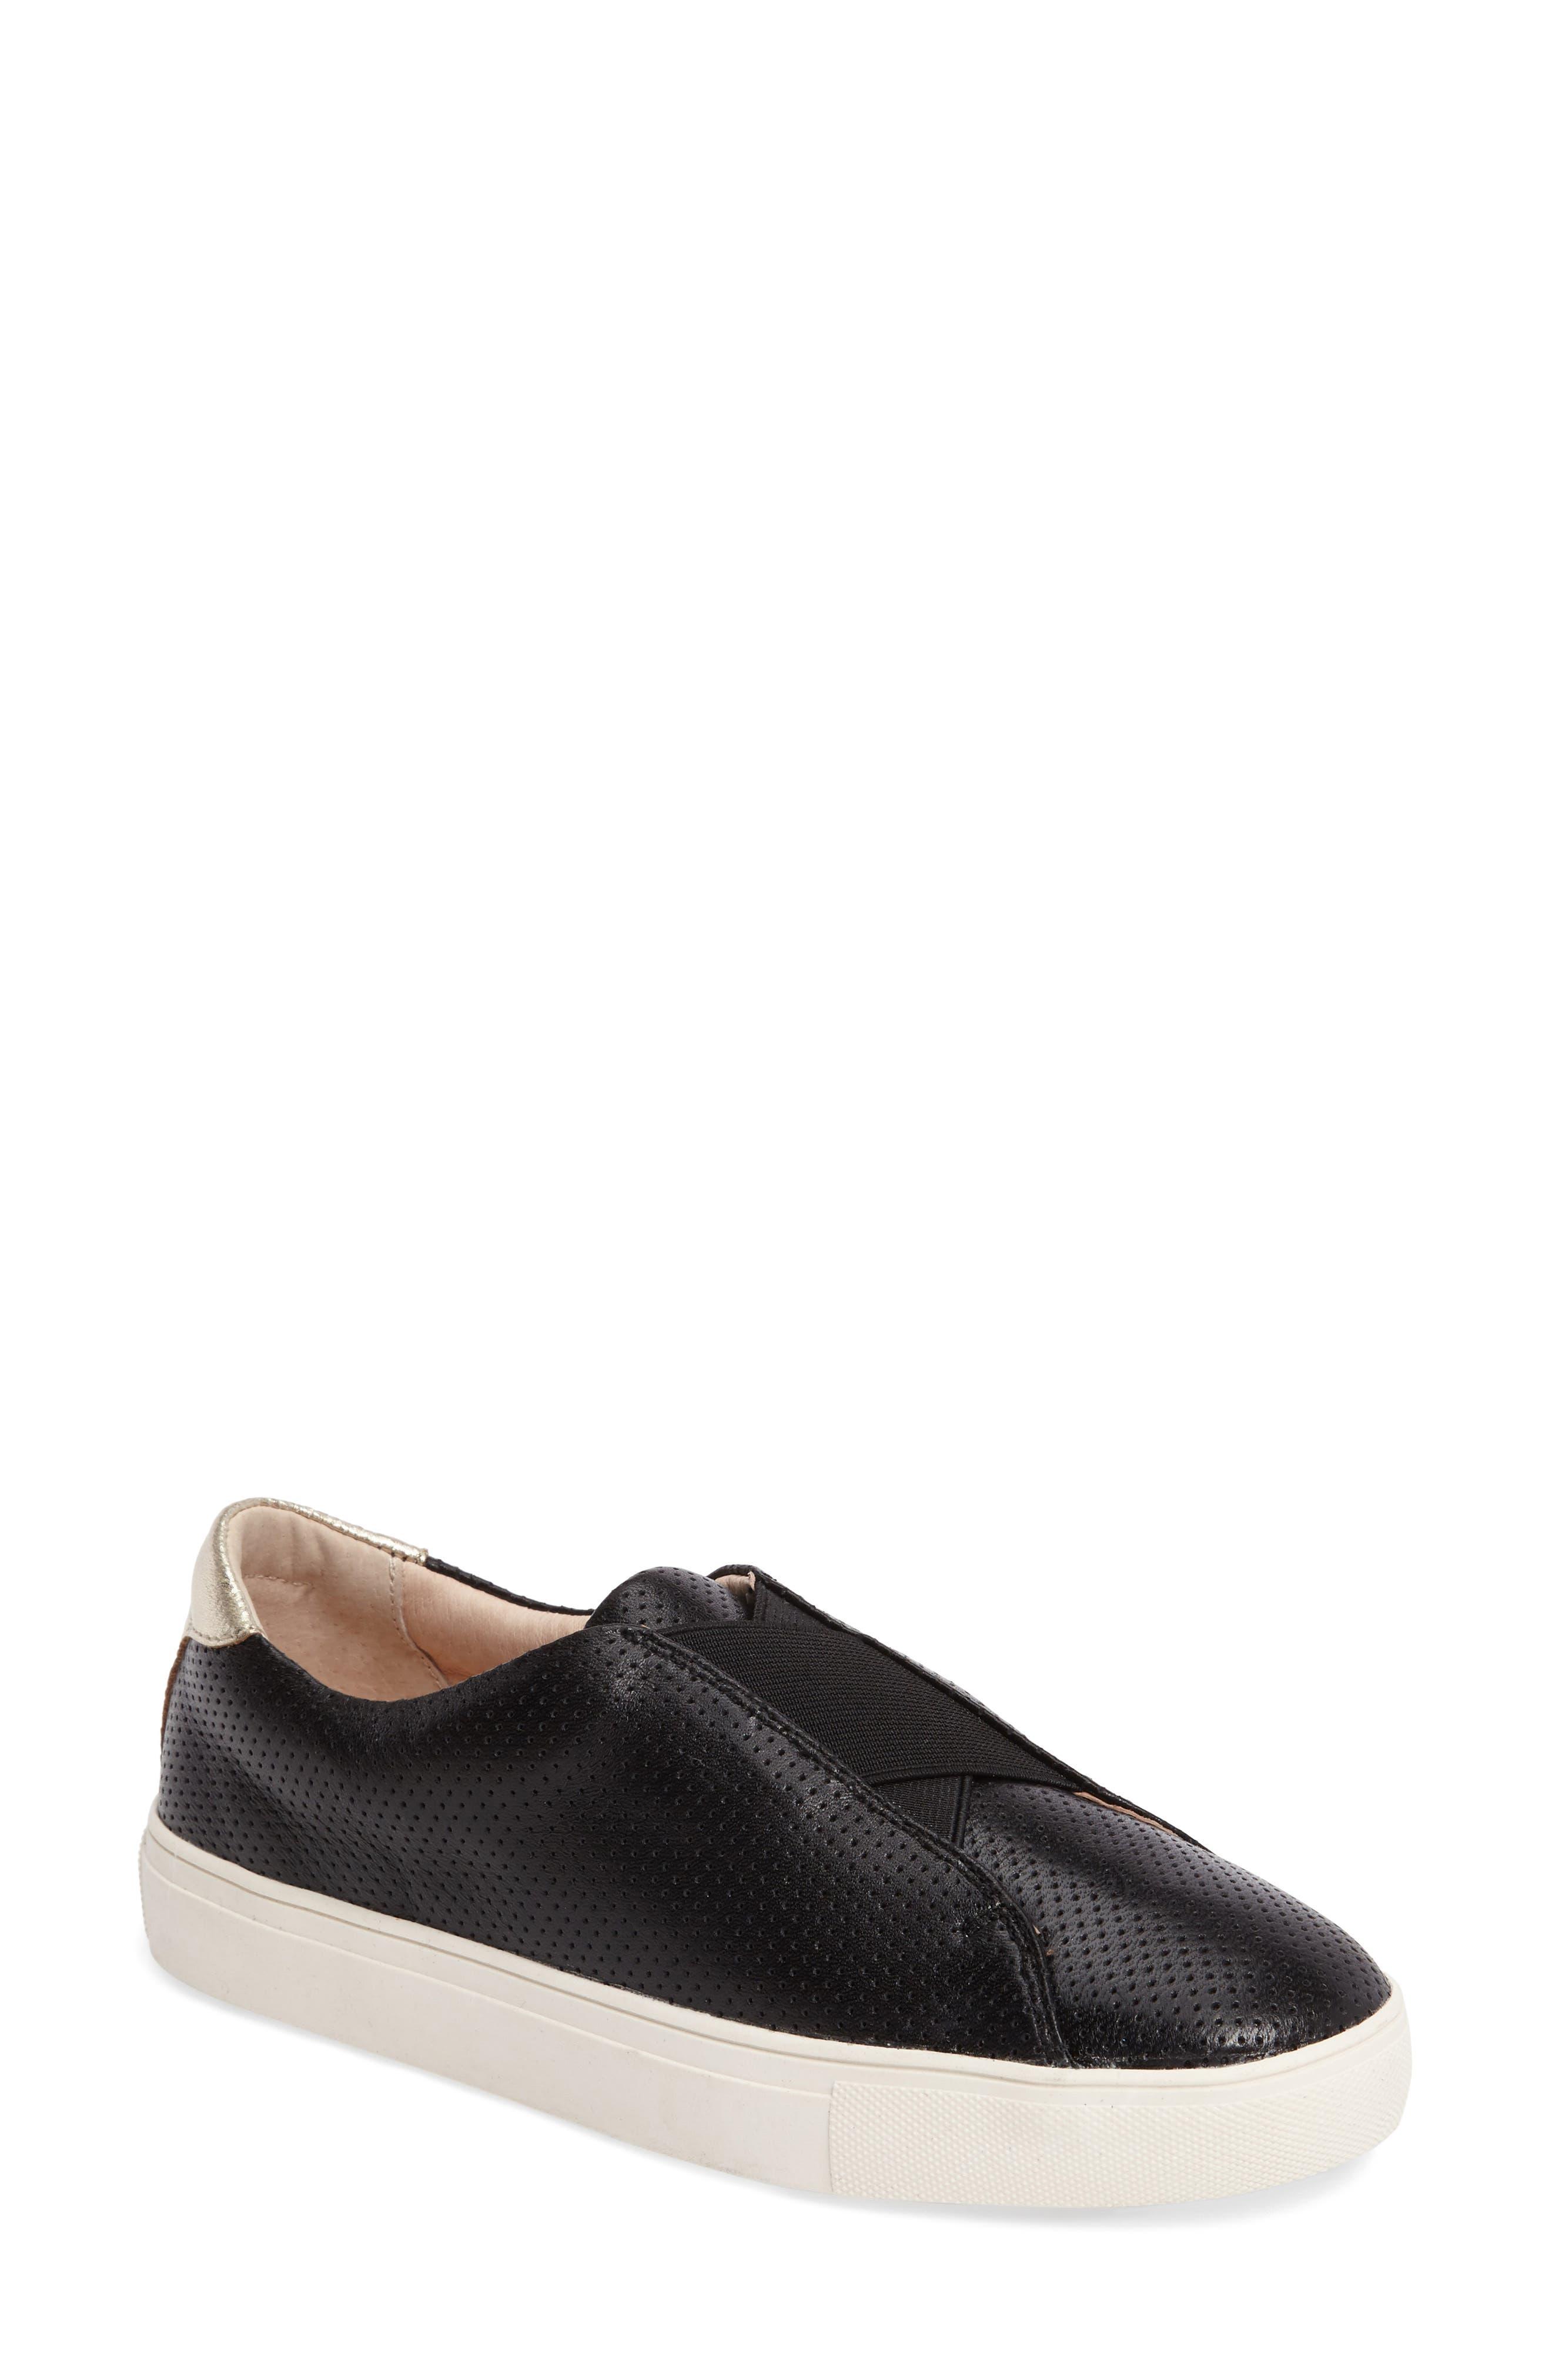 Sudina Giana Slip-On Sneaker (Women)